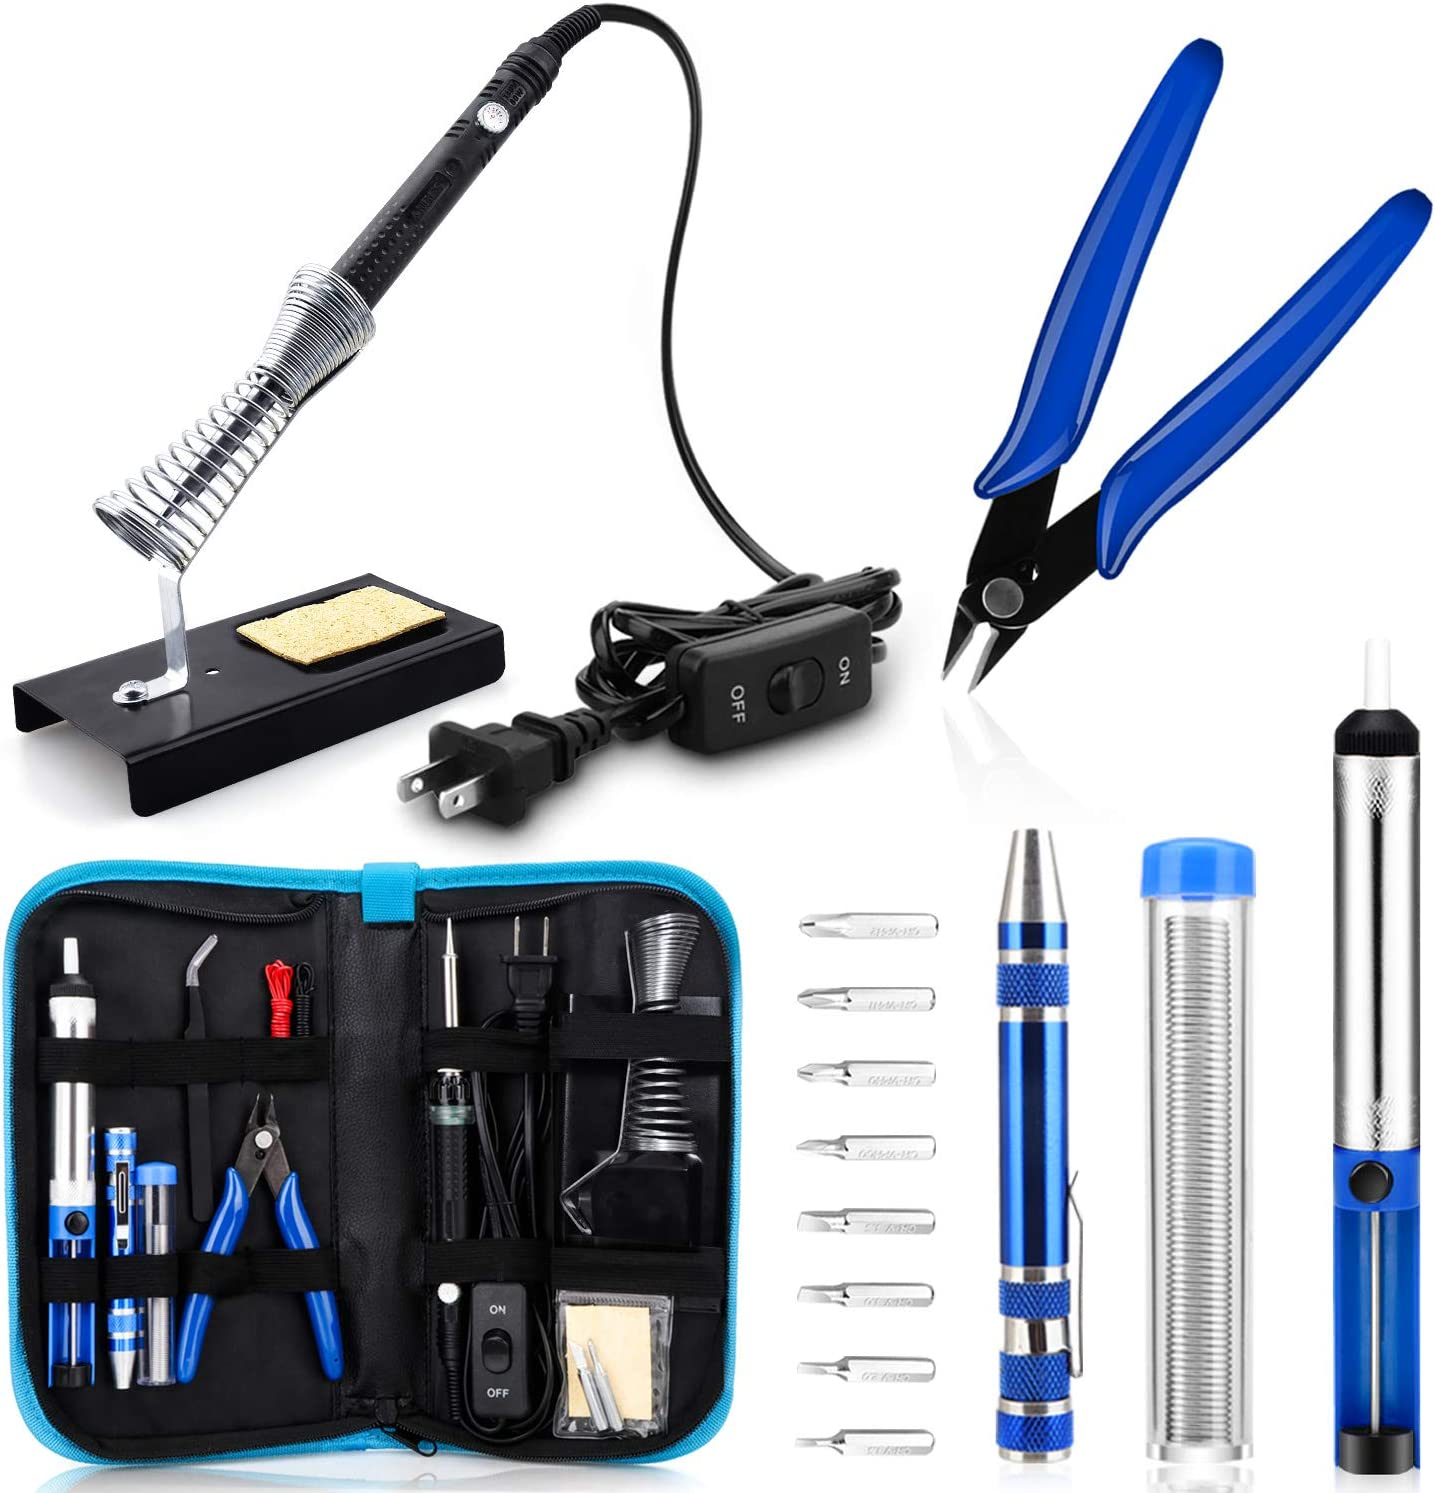 60W Adjustable Temperature Welding Tool Upgraded Anbes Soldering Iron Kit,